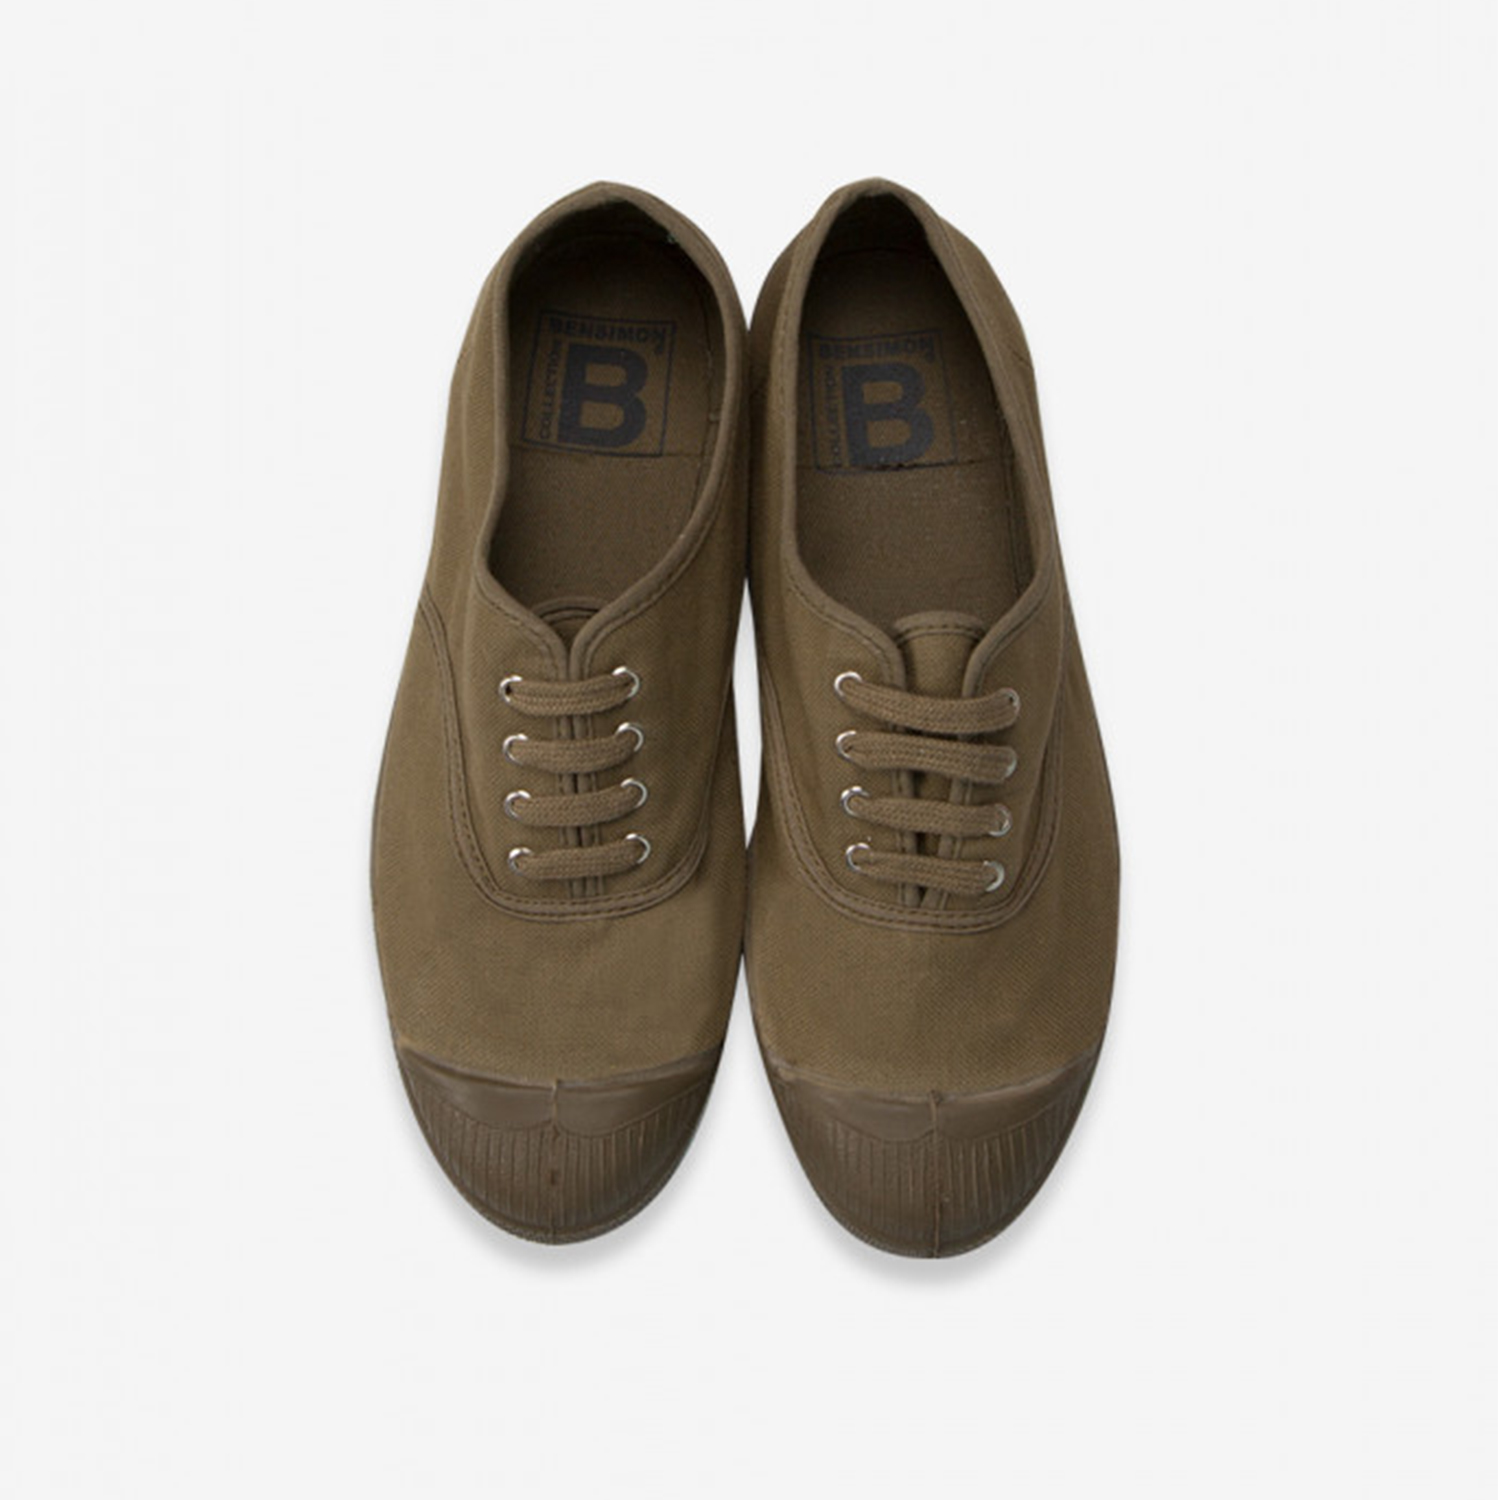 Ben Simon- Tennis shoe- Khaki coloursole